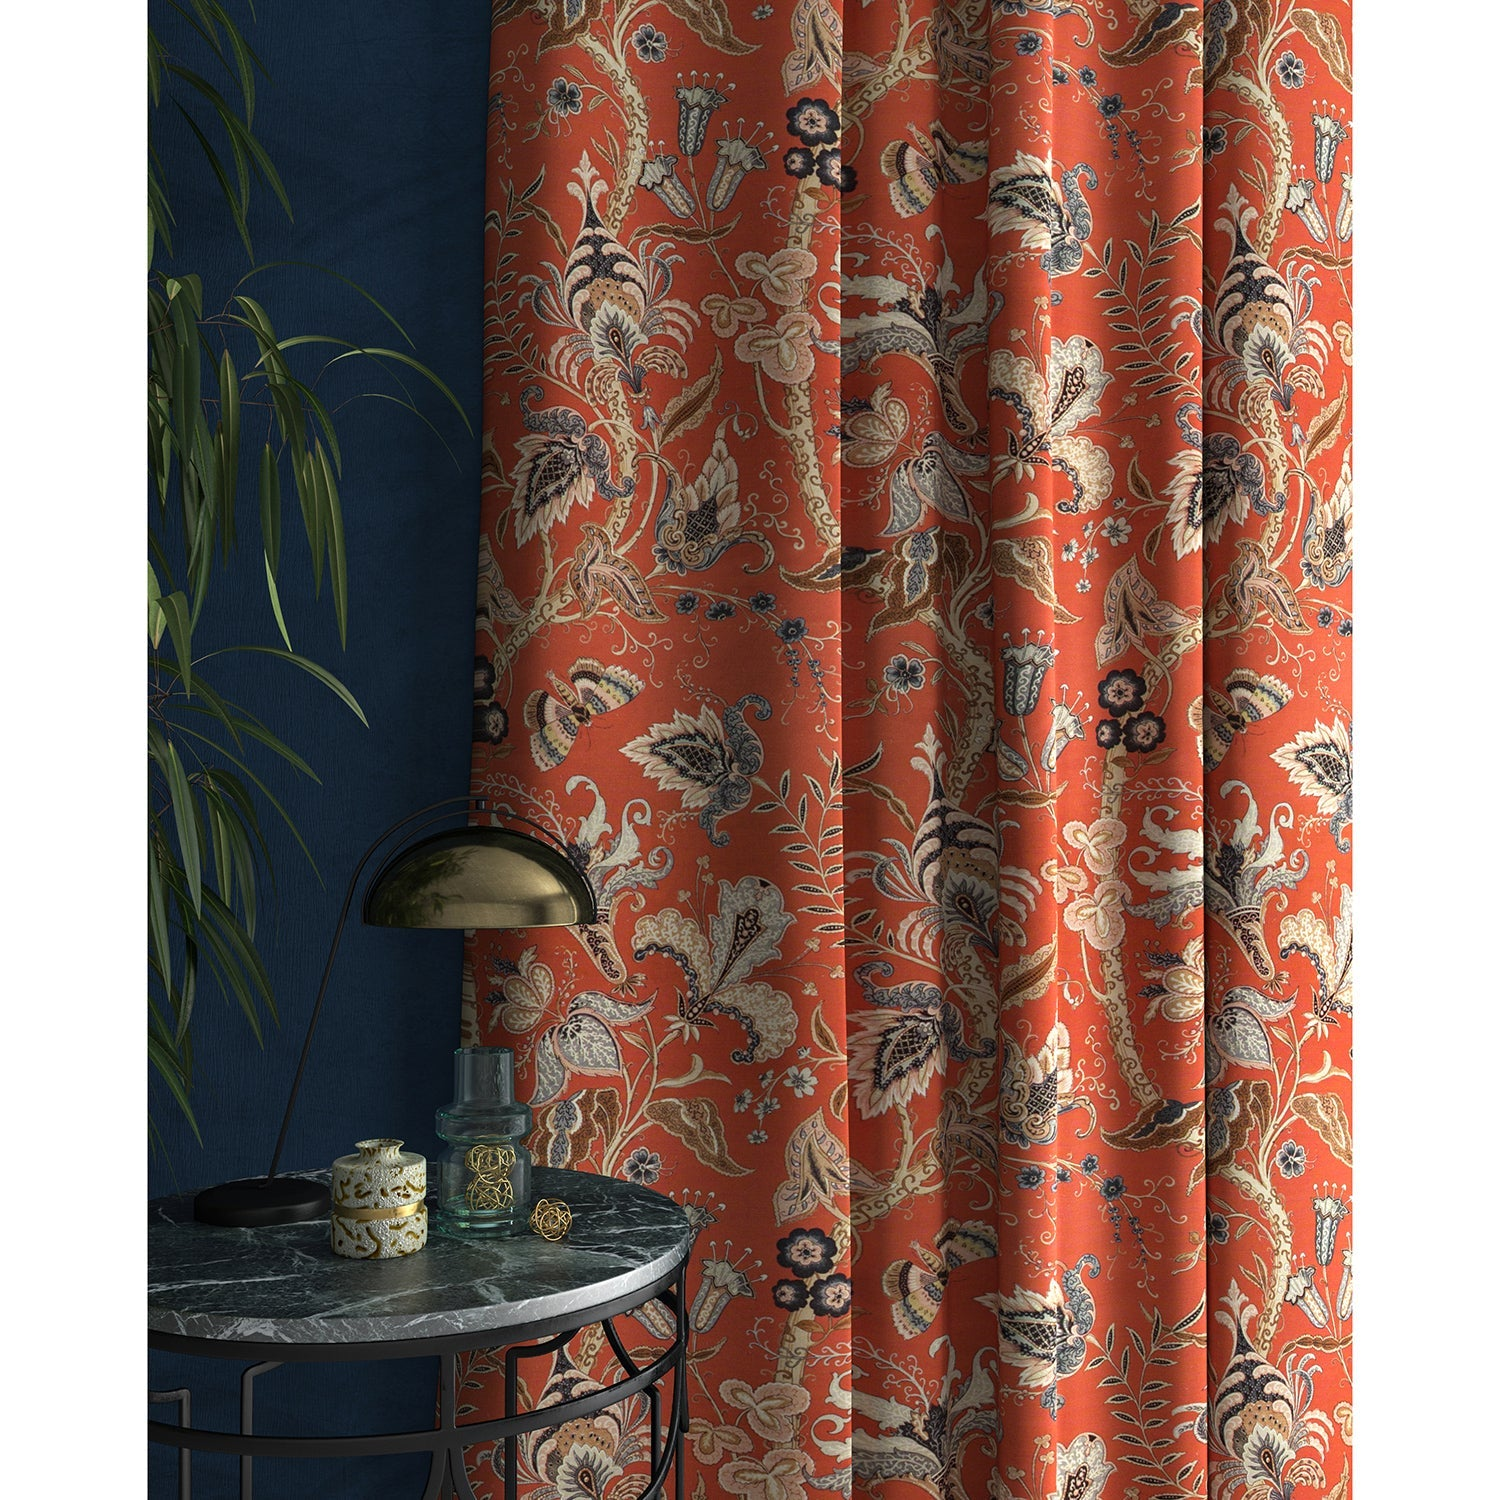 Curtains with a orange fabric with a stylised floral design